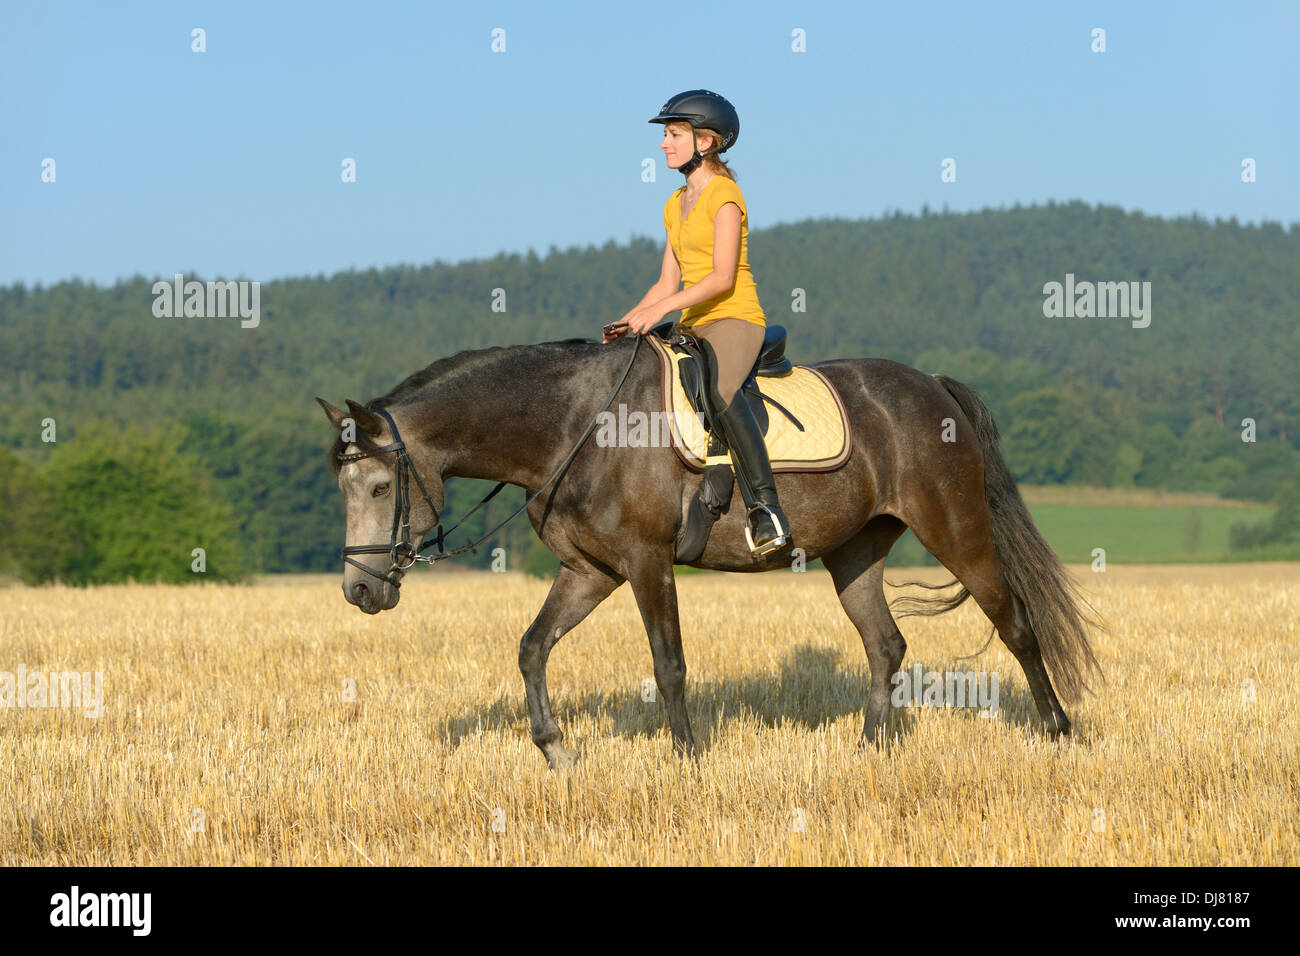 Young rider on back of a Connemara pony in a stubble field riding walk with long reins - Stock Image